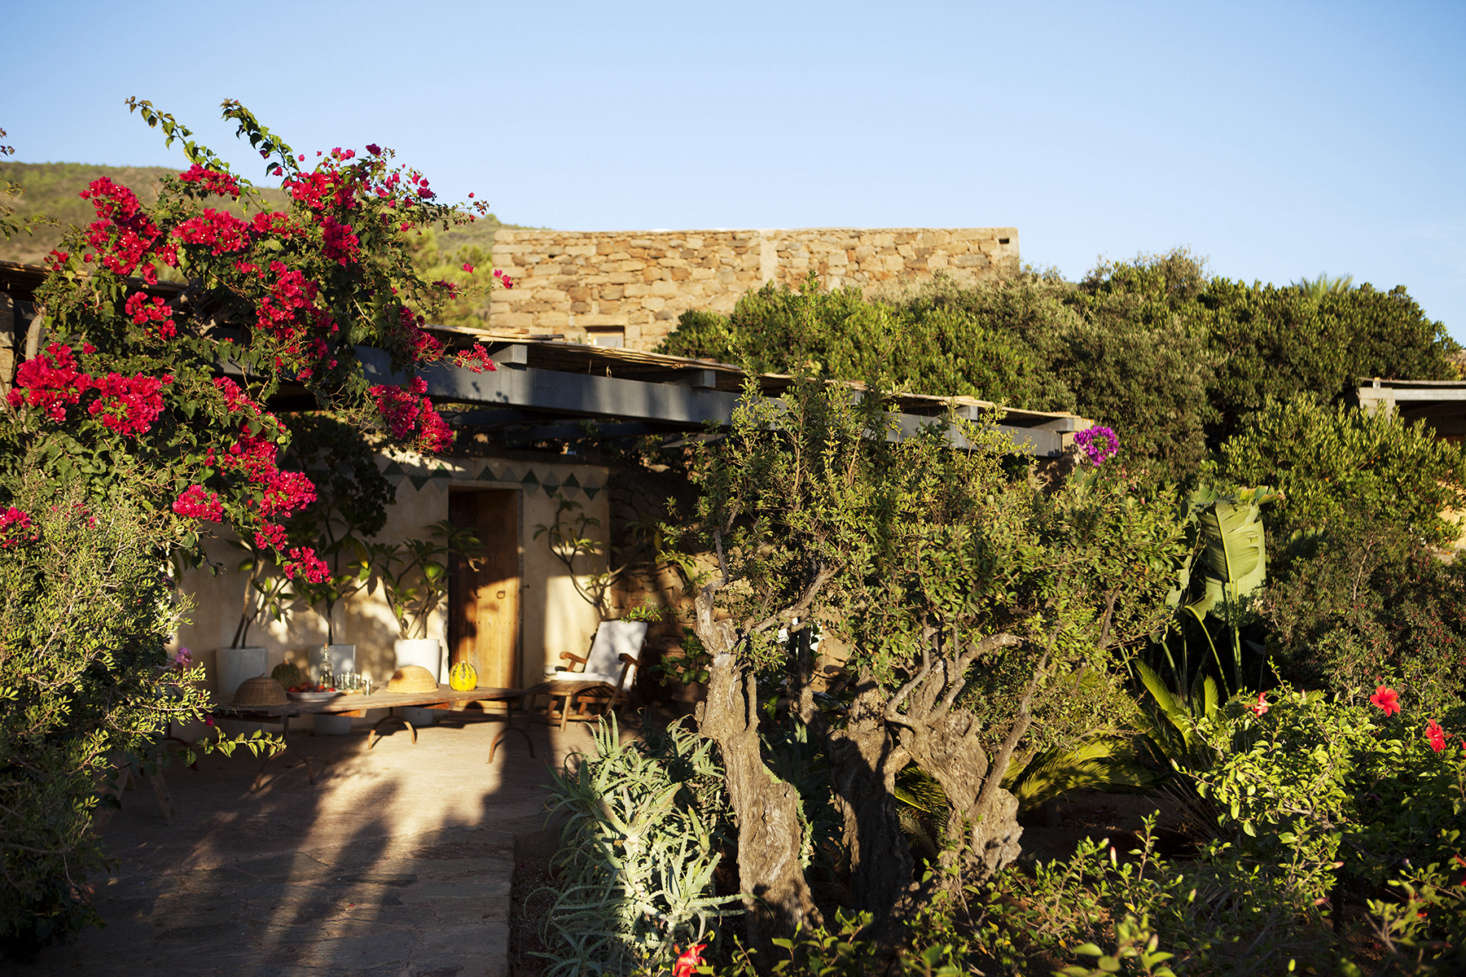 Vacation Dreaming: Elegant Simplicity on the Italian Island of Pantelleria